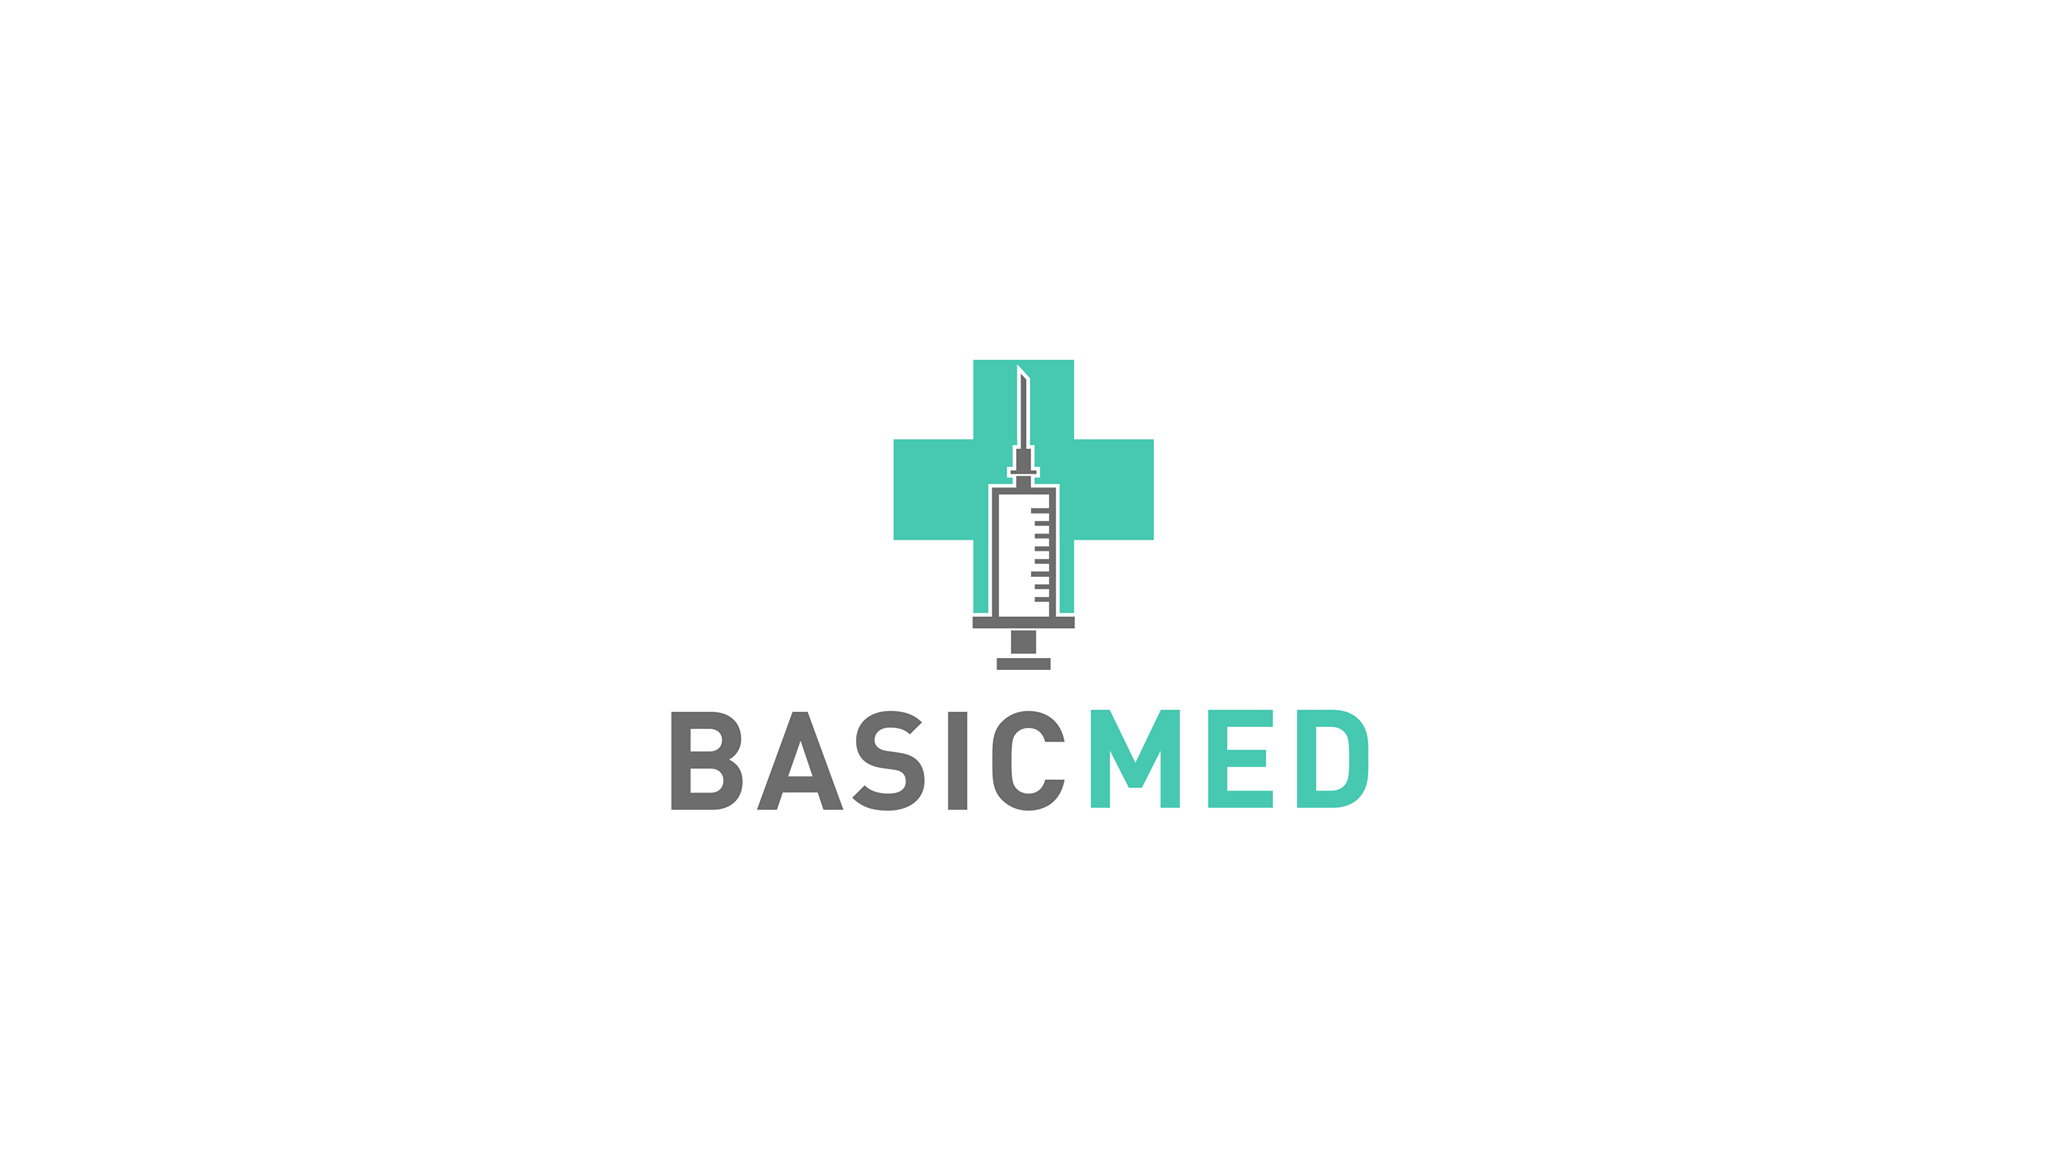 Read BASICMED Reviews